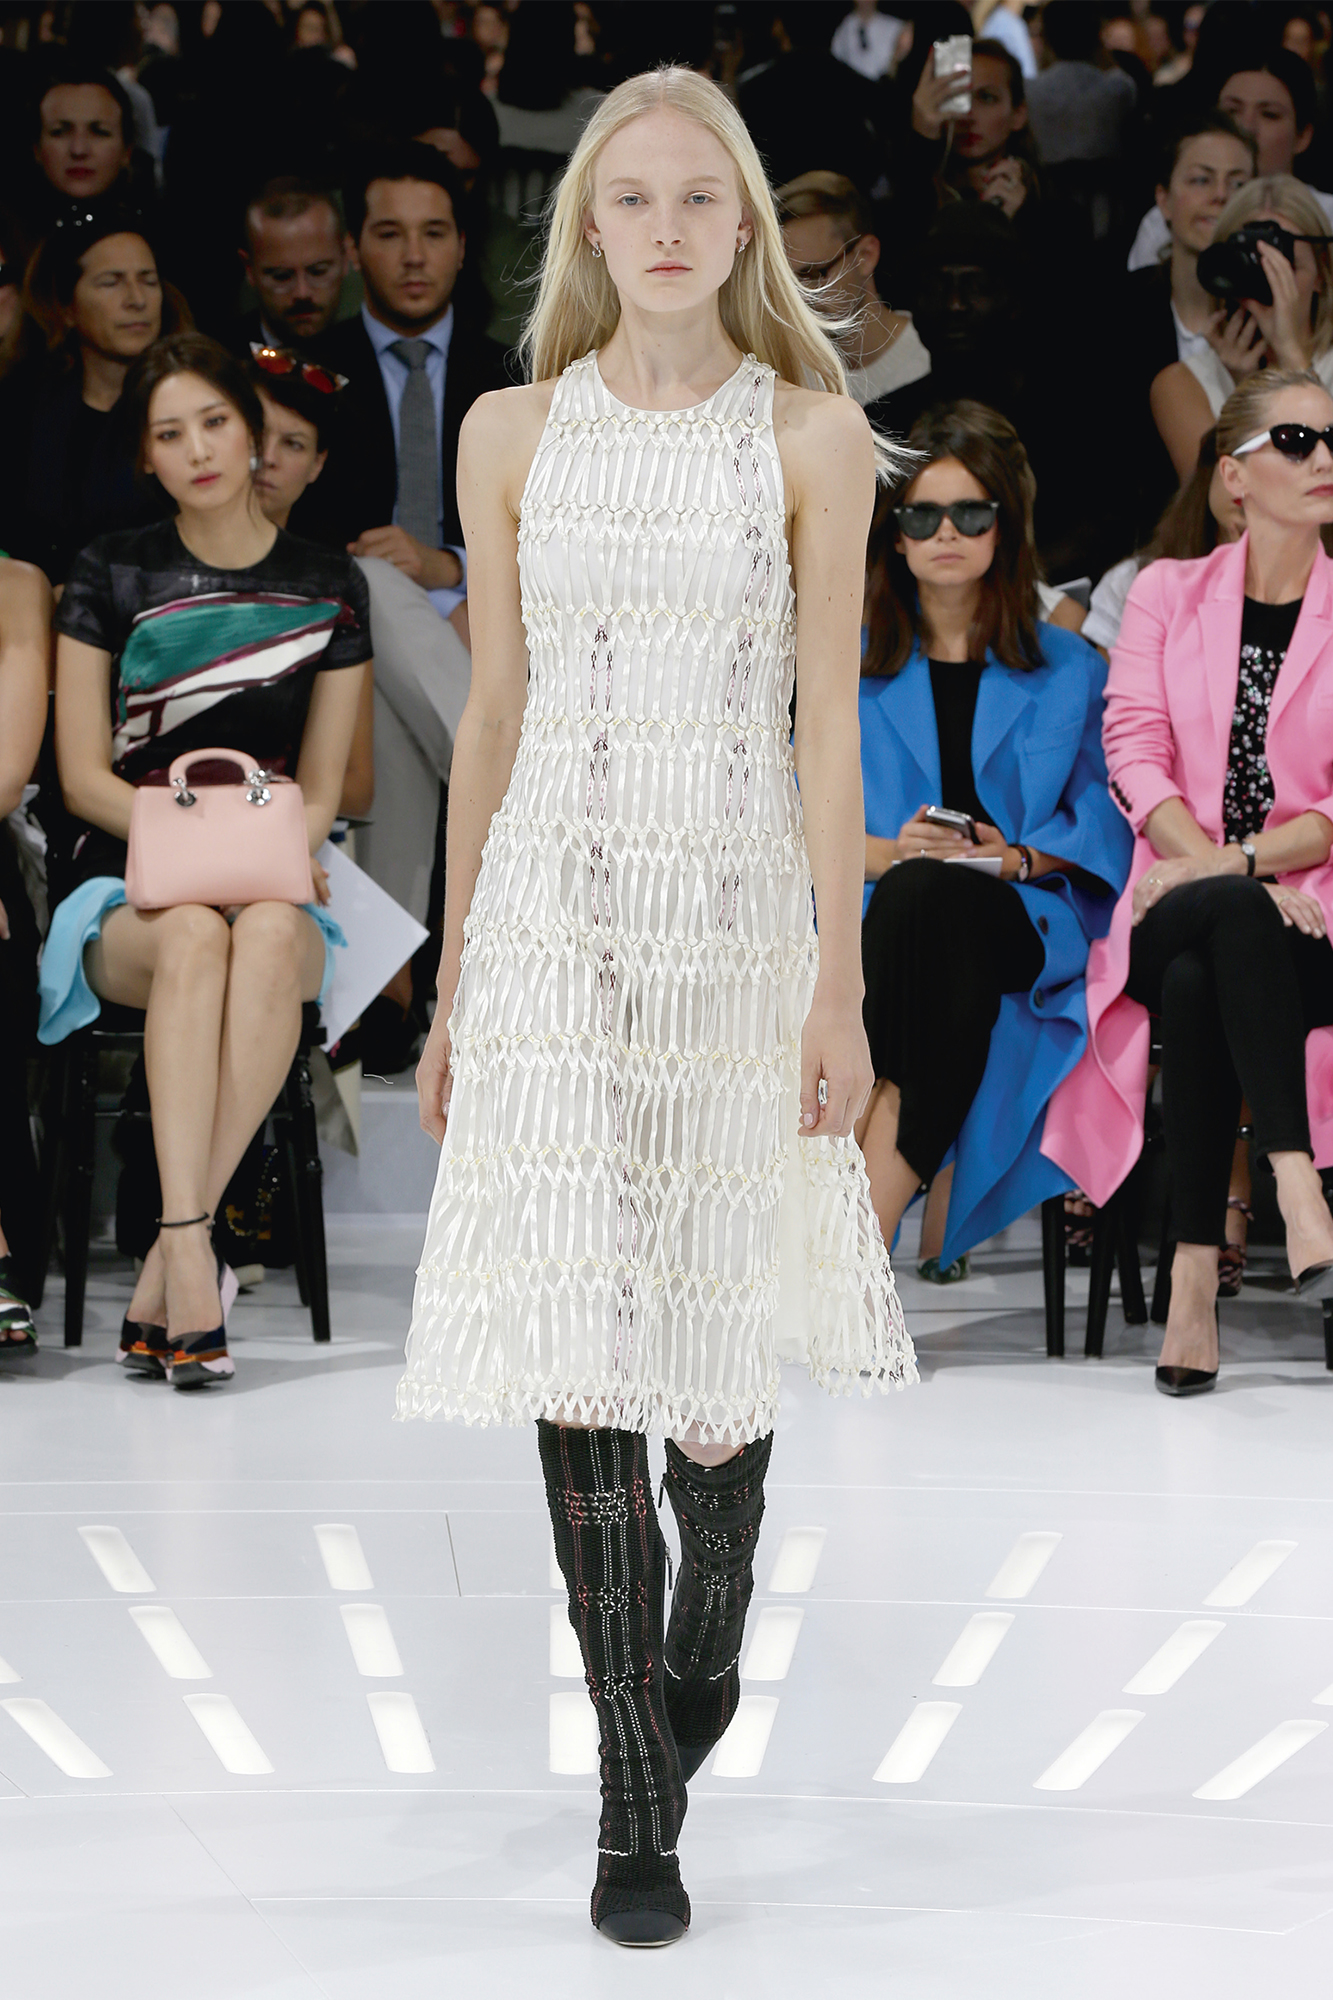 Christian Dior Haute Couture Spring-Summer Ready To Wear Dresses & Accessories Collection 2015-16 (33)